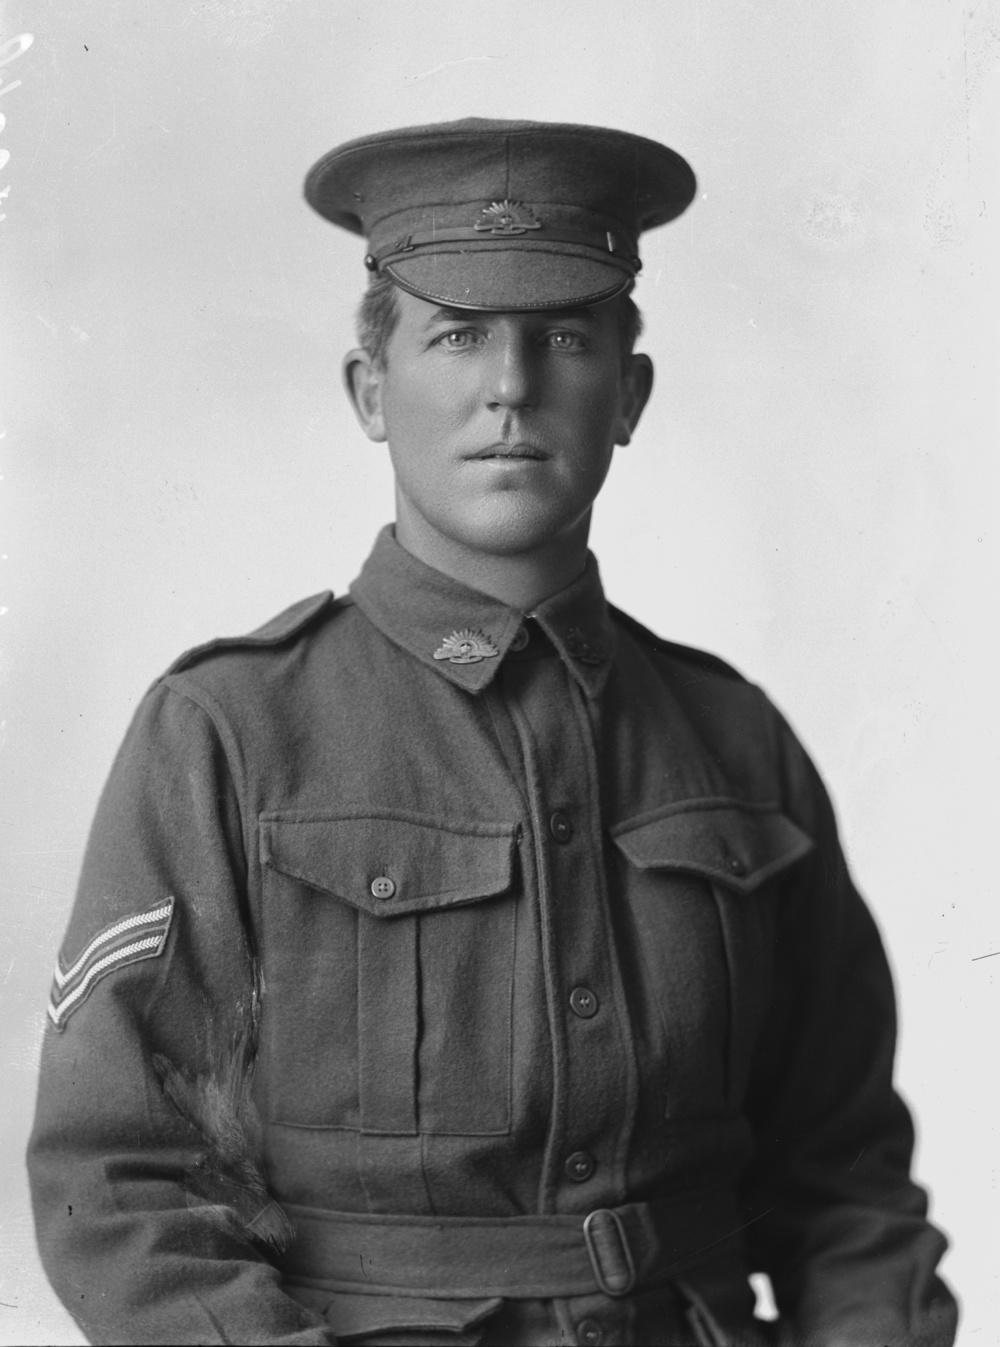 Photographed at the Dease Studio, 117 Barrack Street Perth WA Image courtesy of the State Library of Western Australia: 108368PD